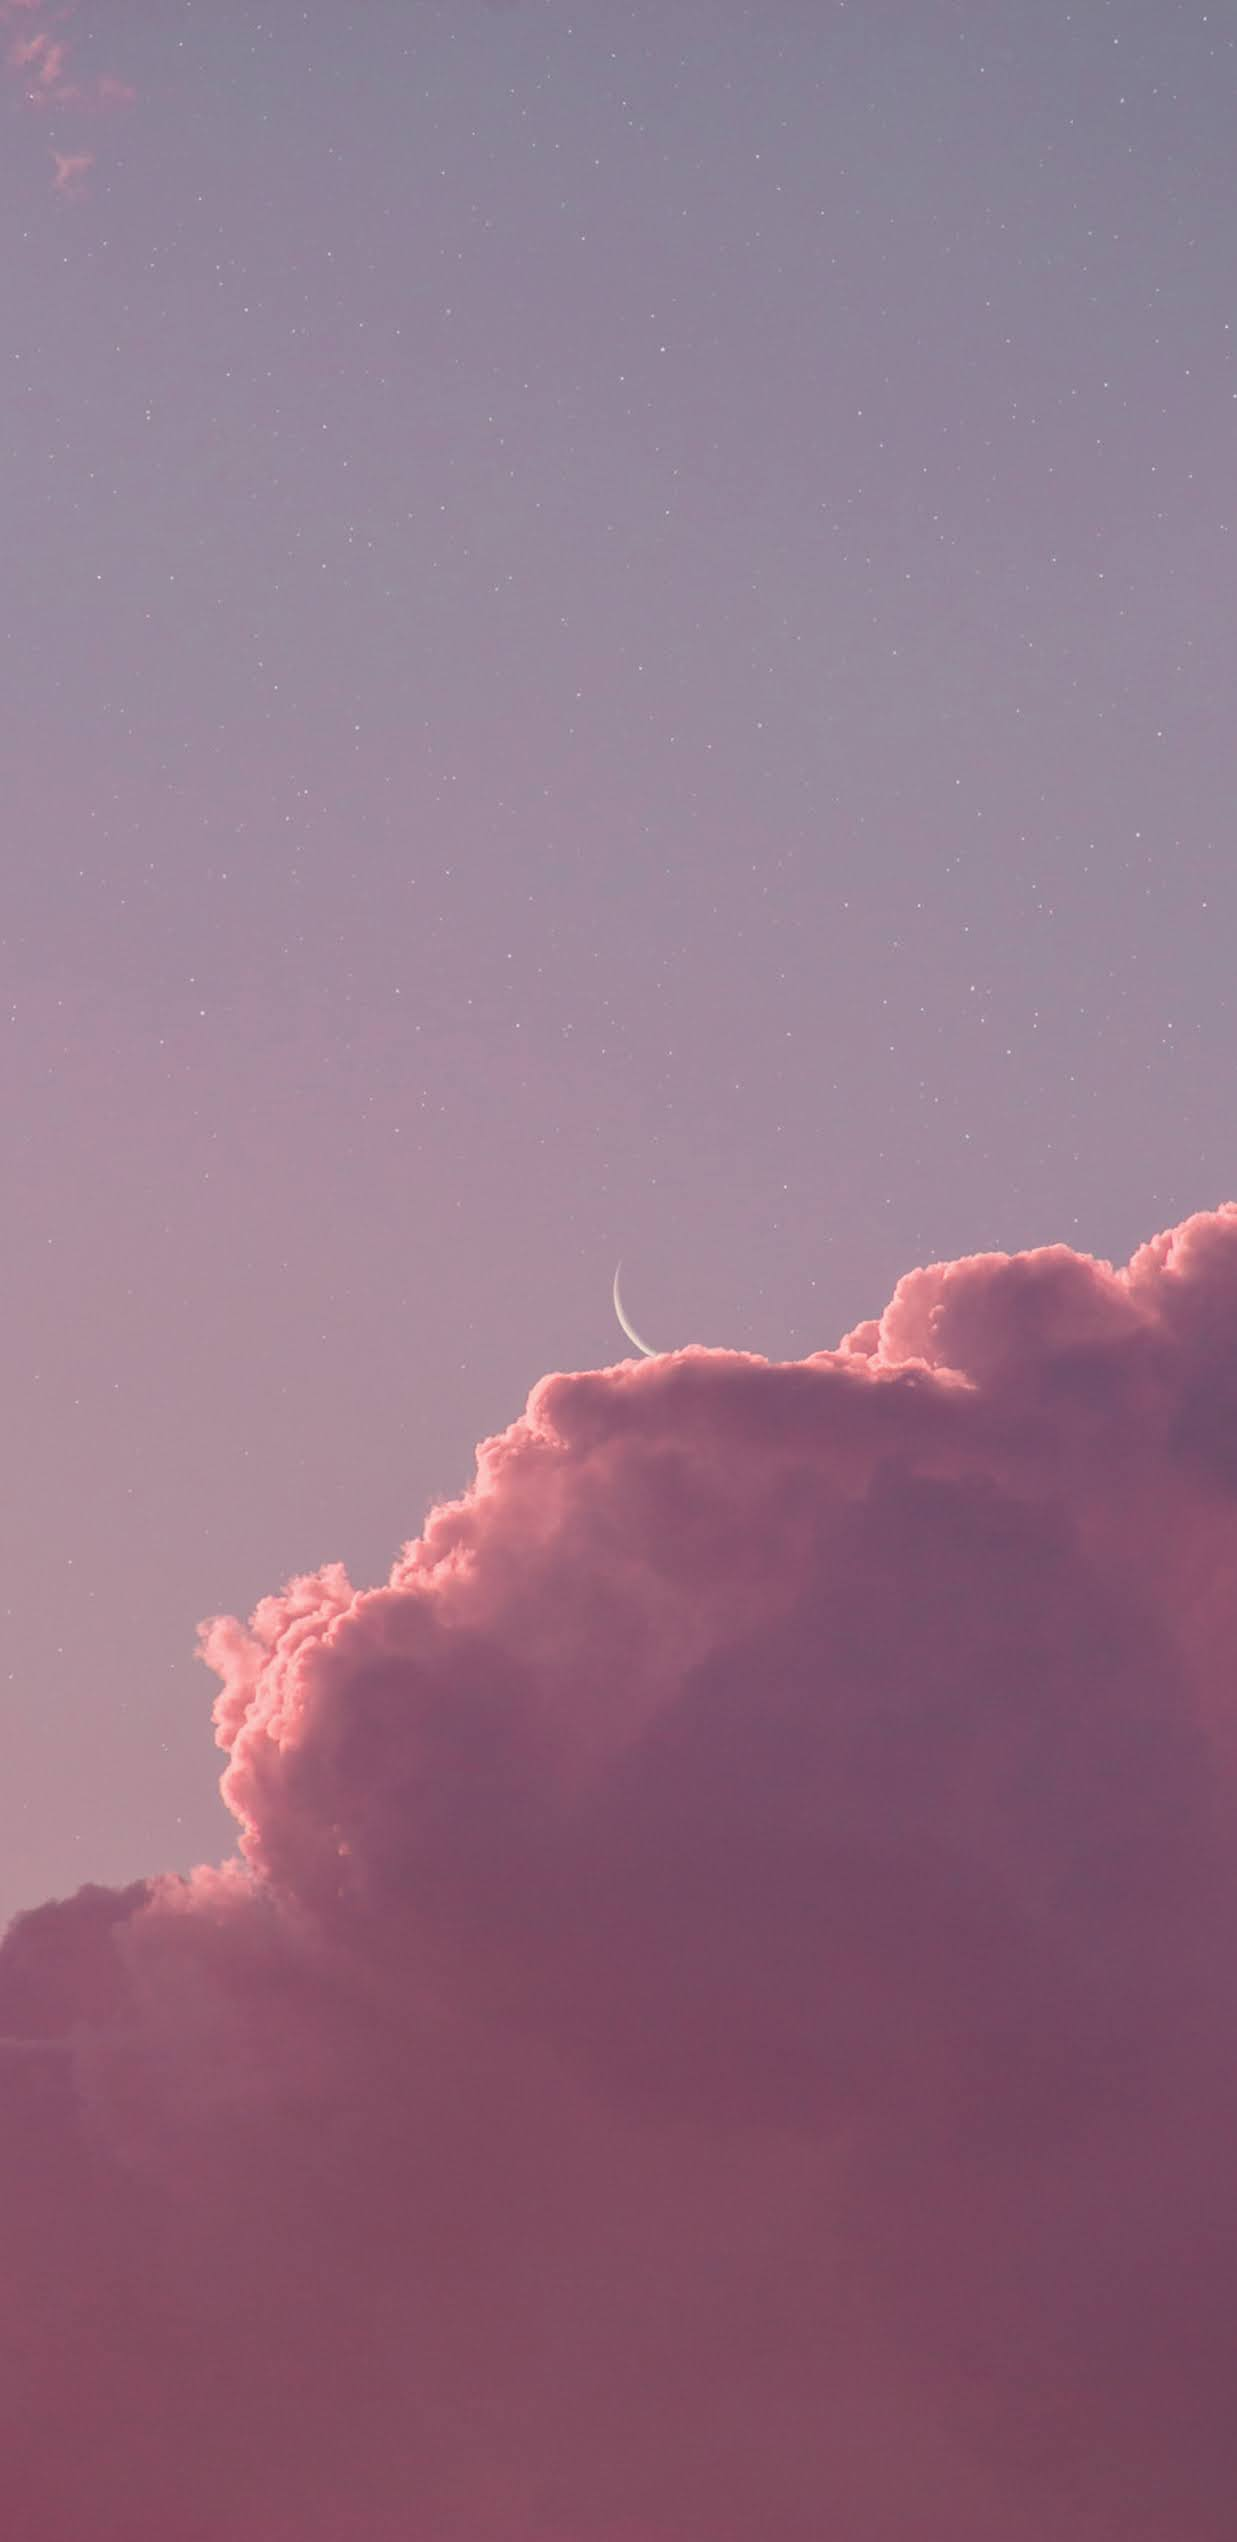 Crescent moon in the pink starry sky